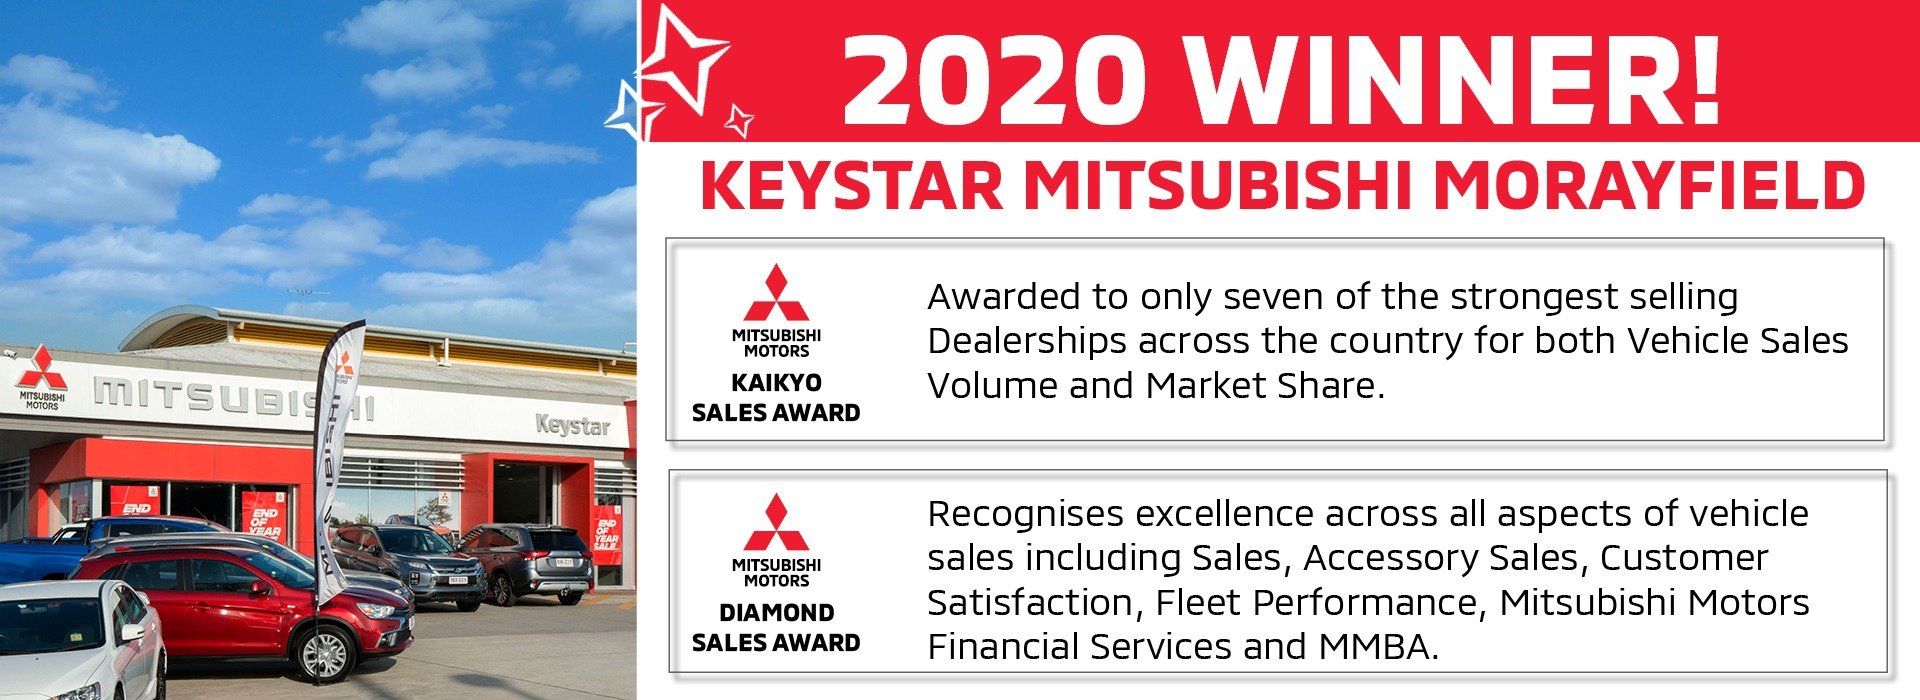 Keystar Mitsubishi Wins 2020 Awards!